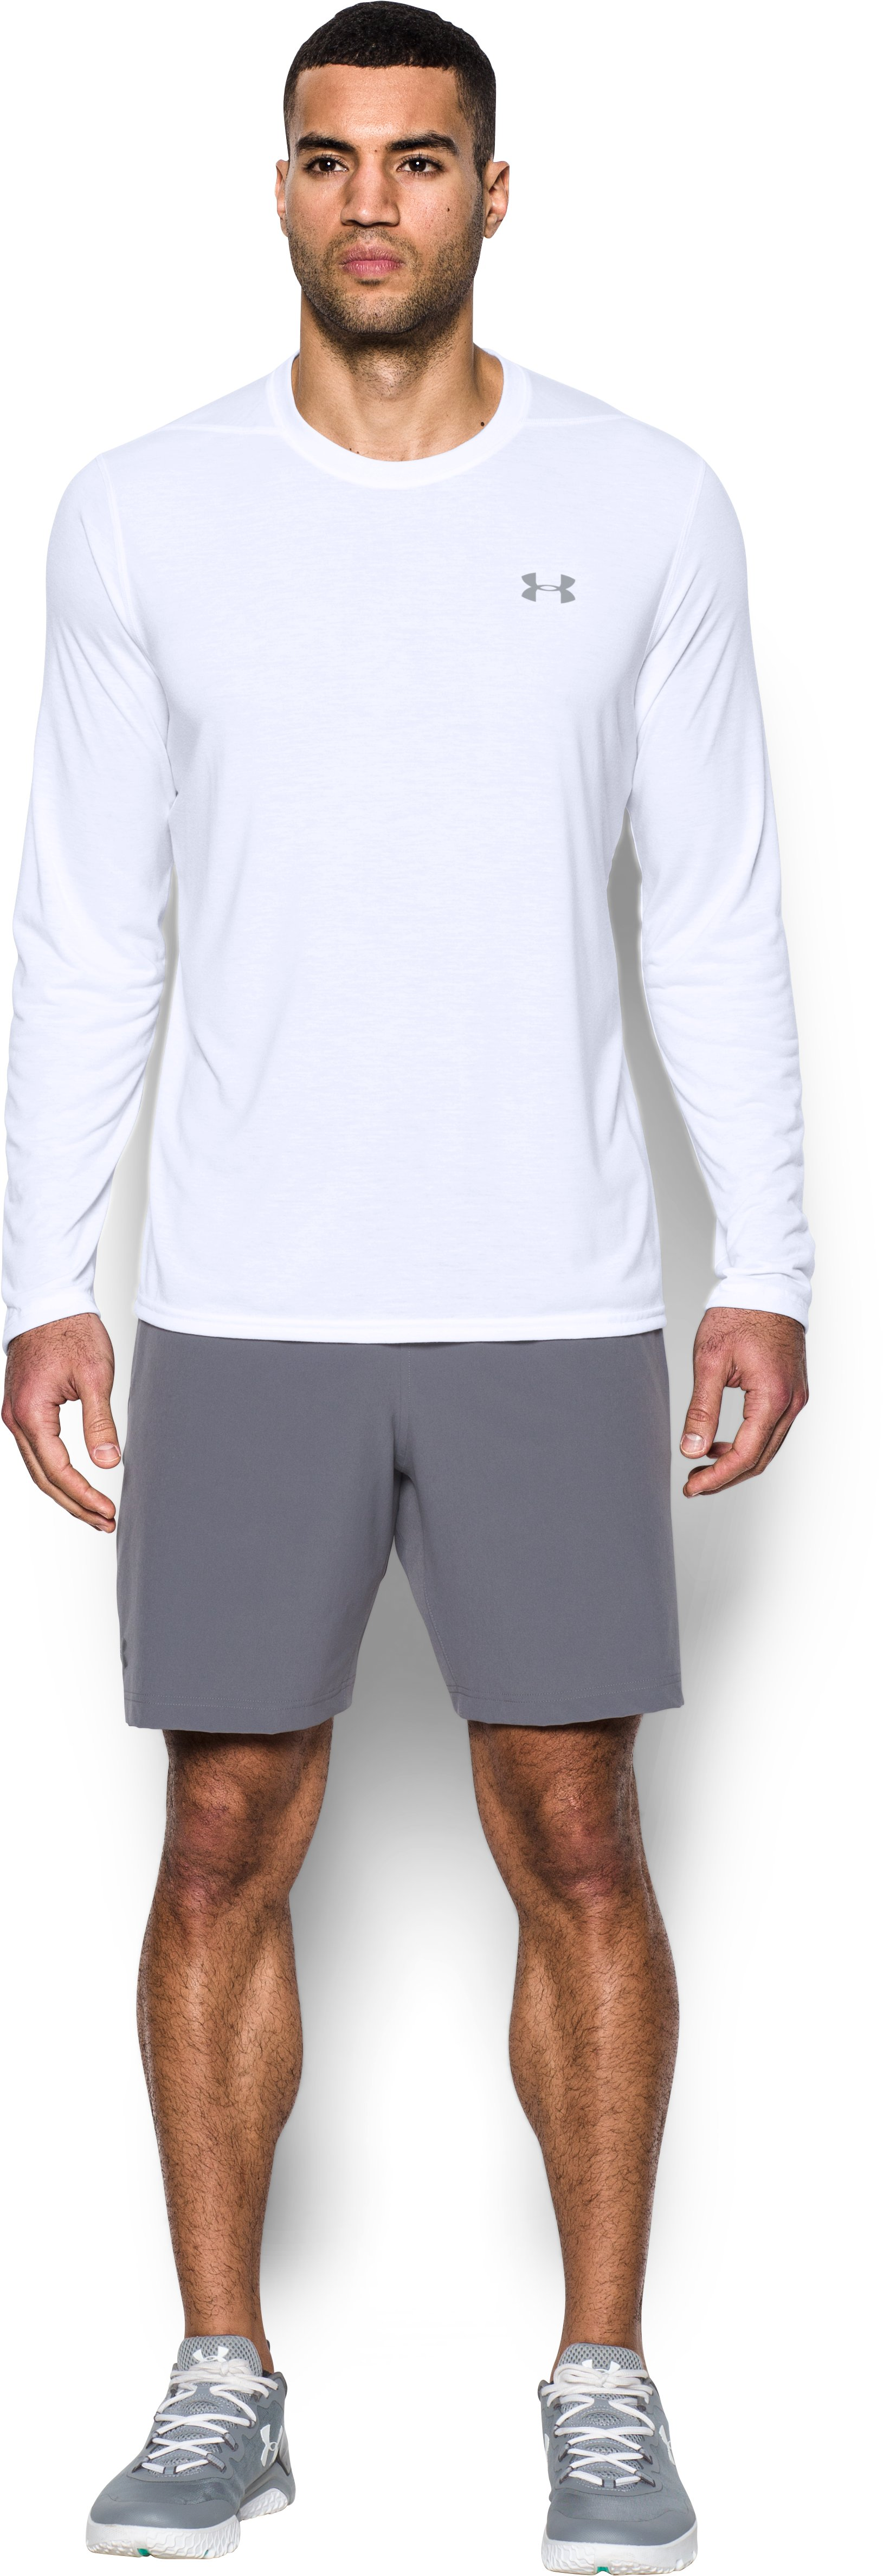 large long sleeve t-shirts Men's UA Threadborne Siro Long Sleeve T-Shirt It <strong>fits</strong> very well and is super comfortable.